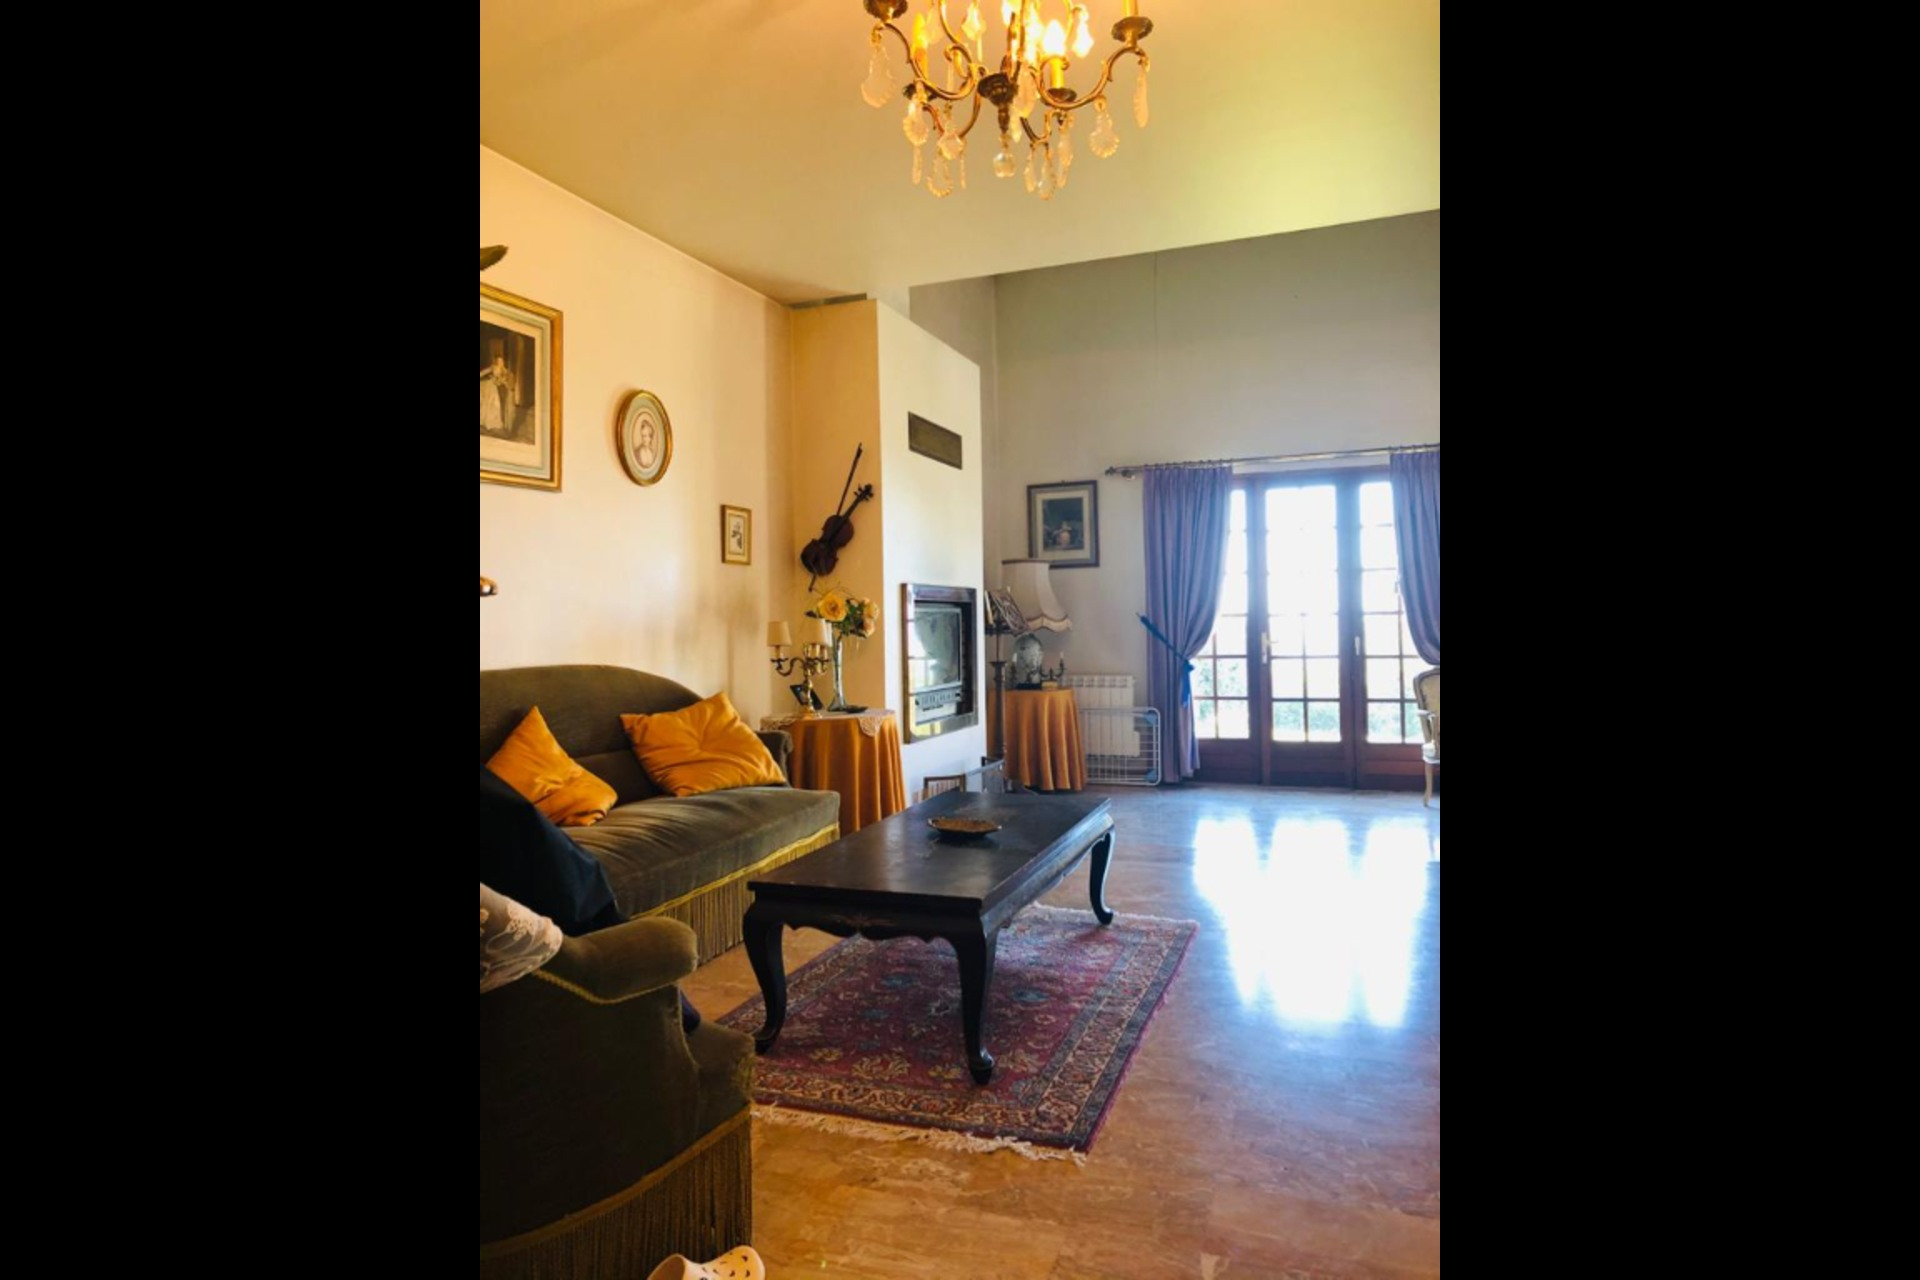 image 3 - House For sale feucherolles - 8 rooms